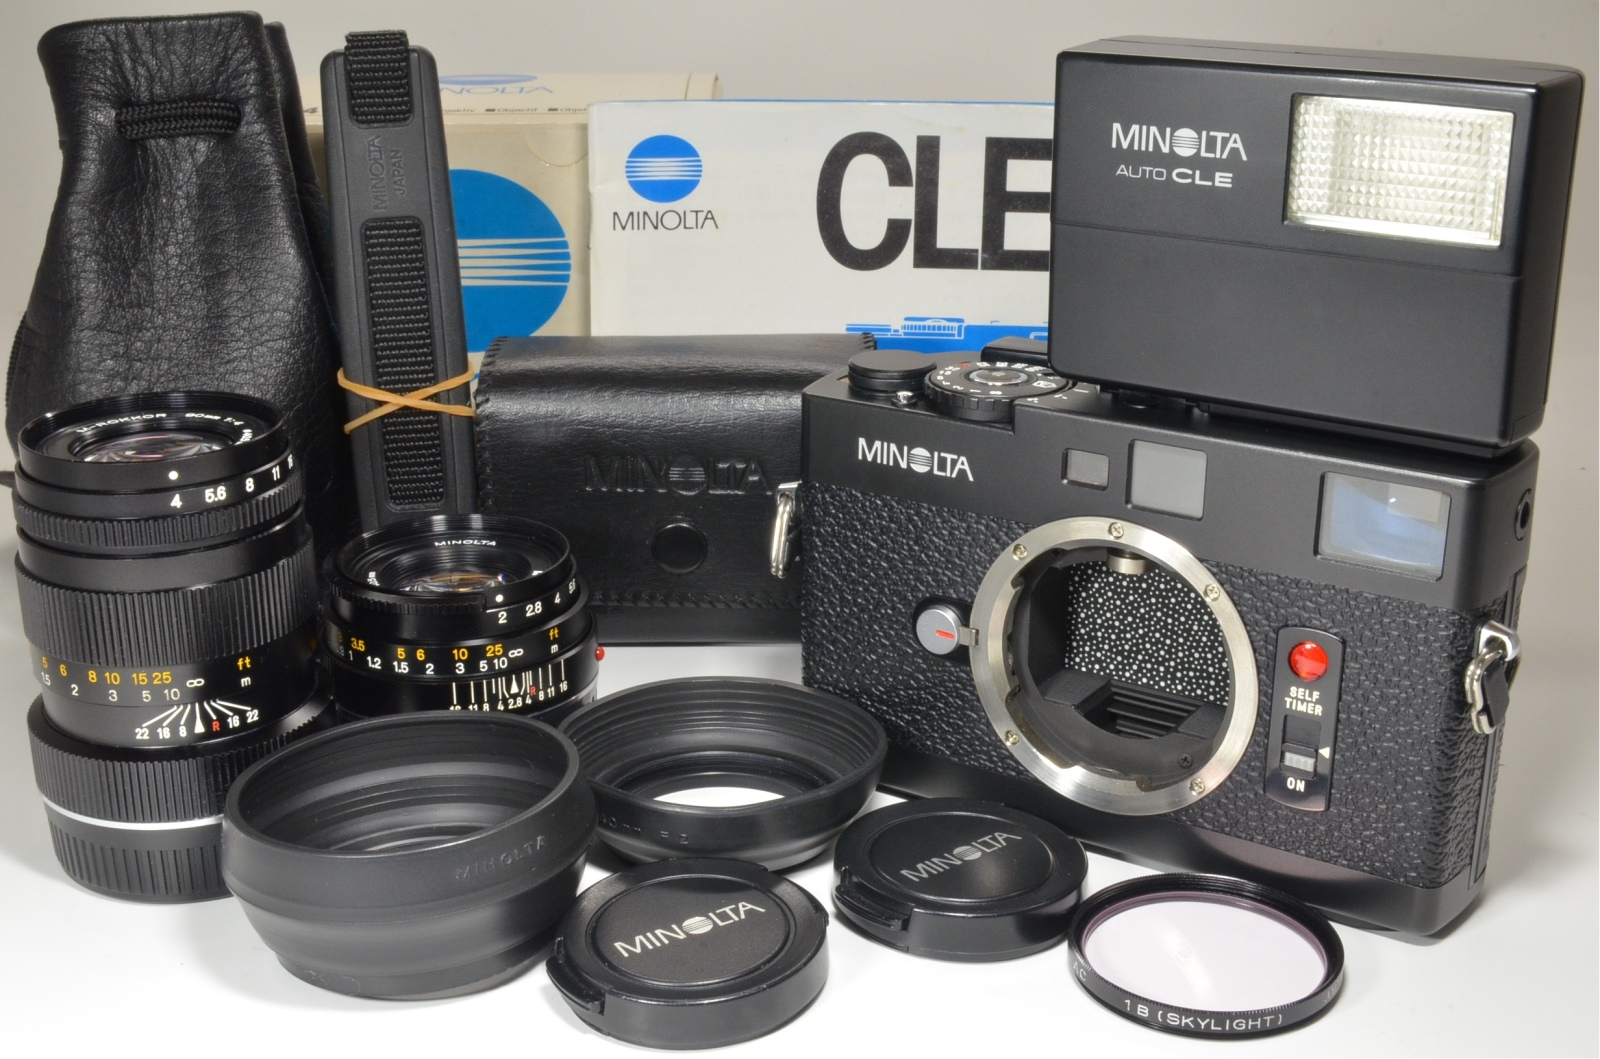 minolta cle 35mm film camera with lens m-rokkor 40mm f2, 90mm f4 and flash